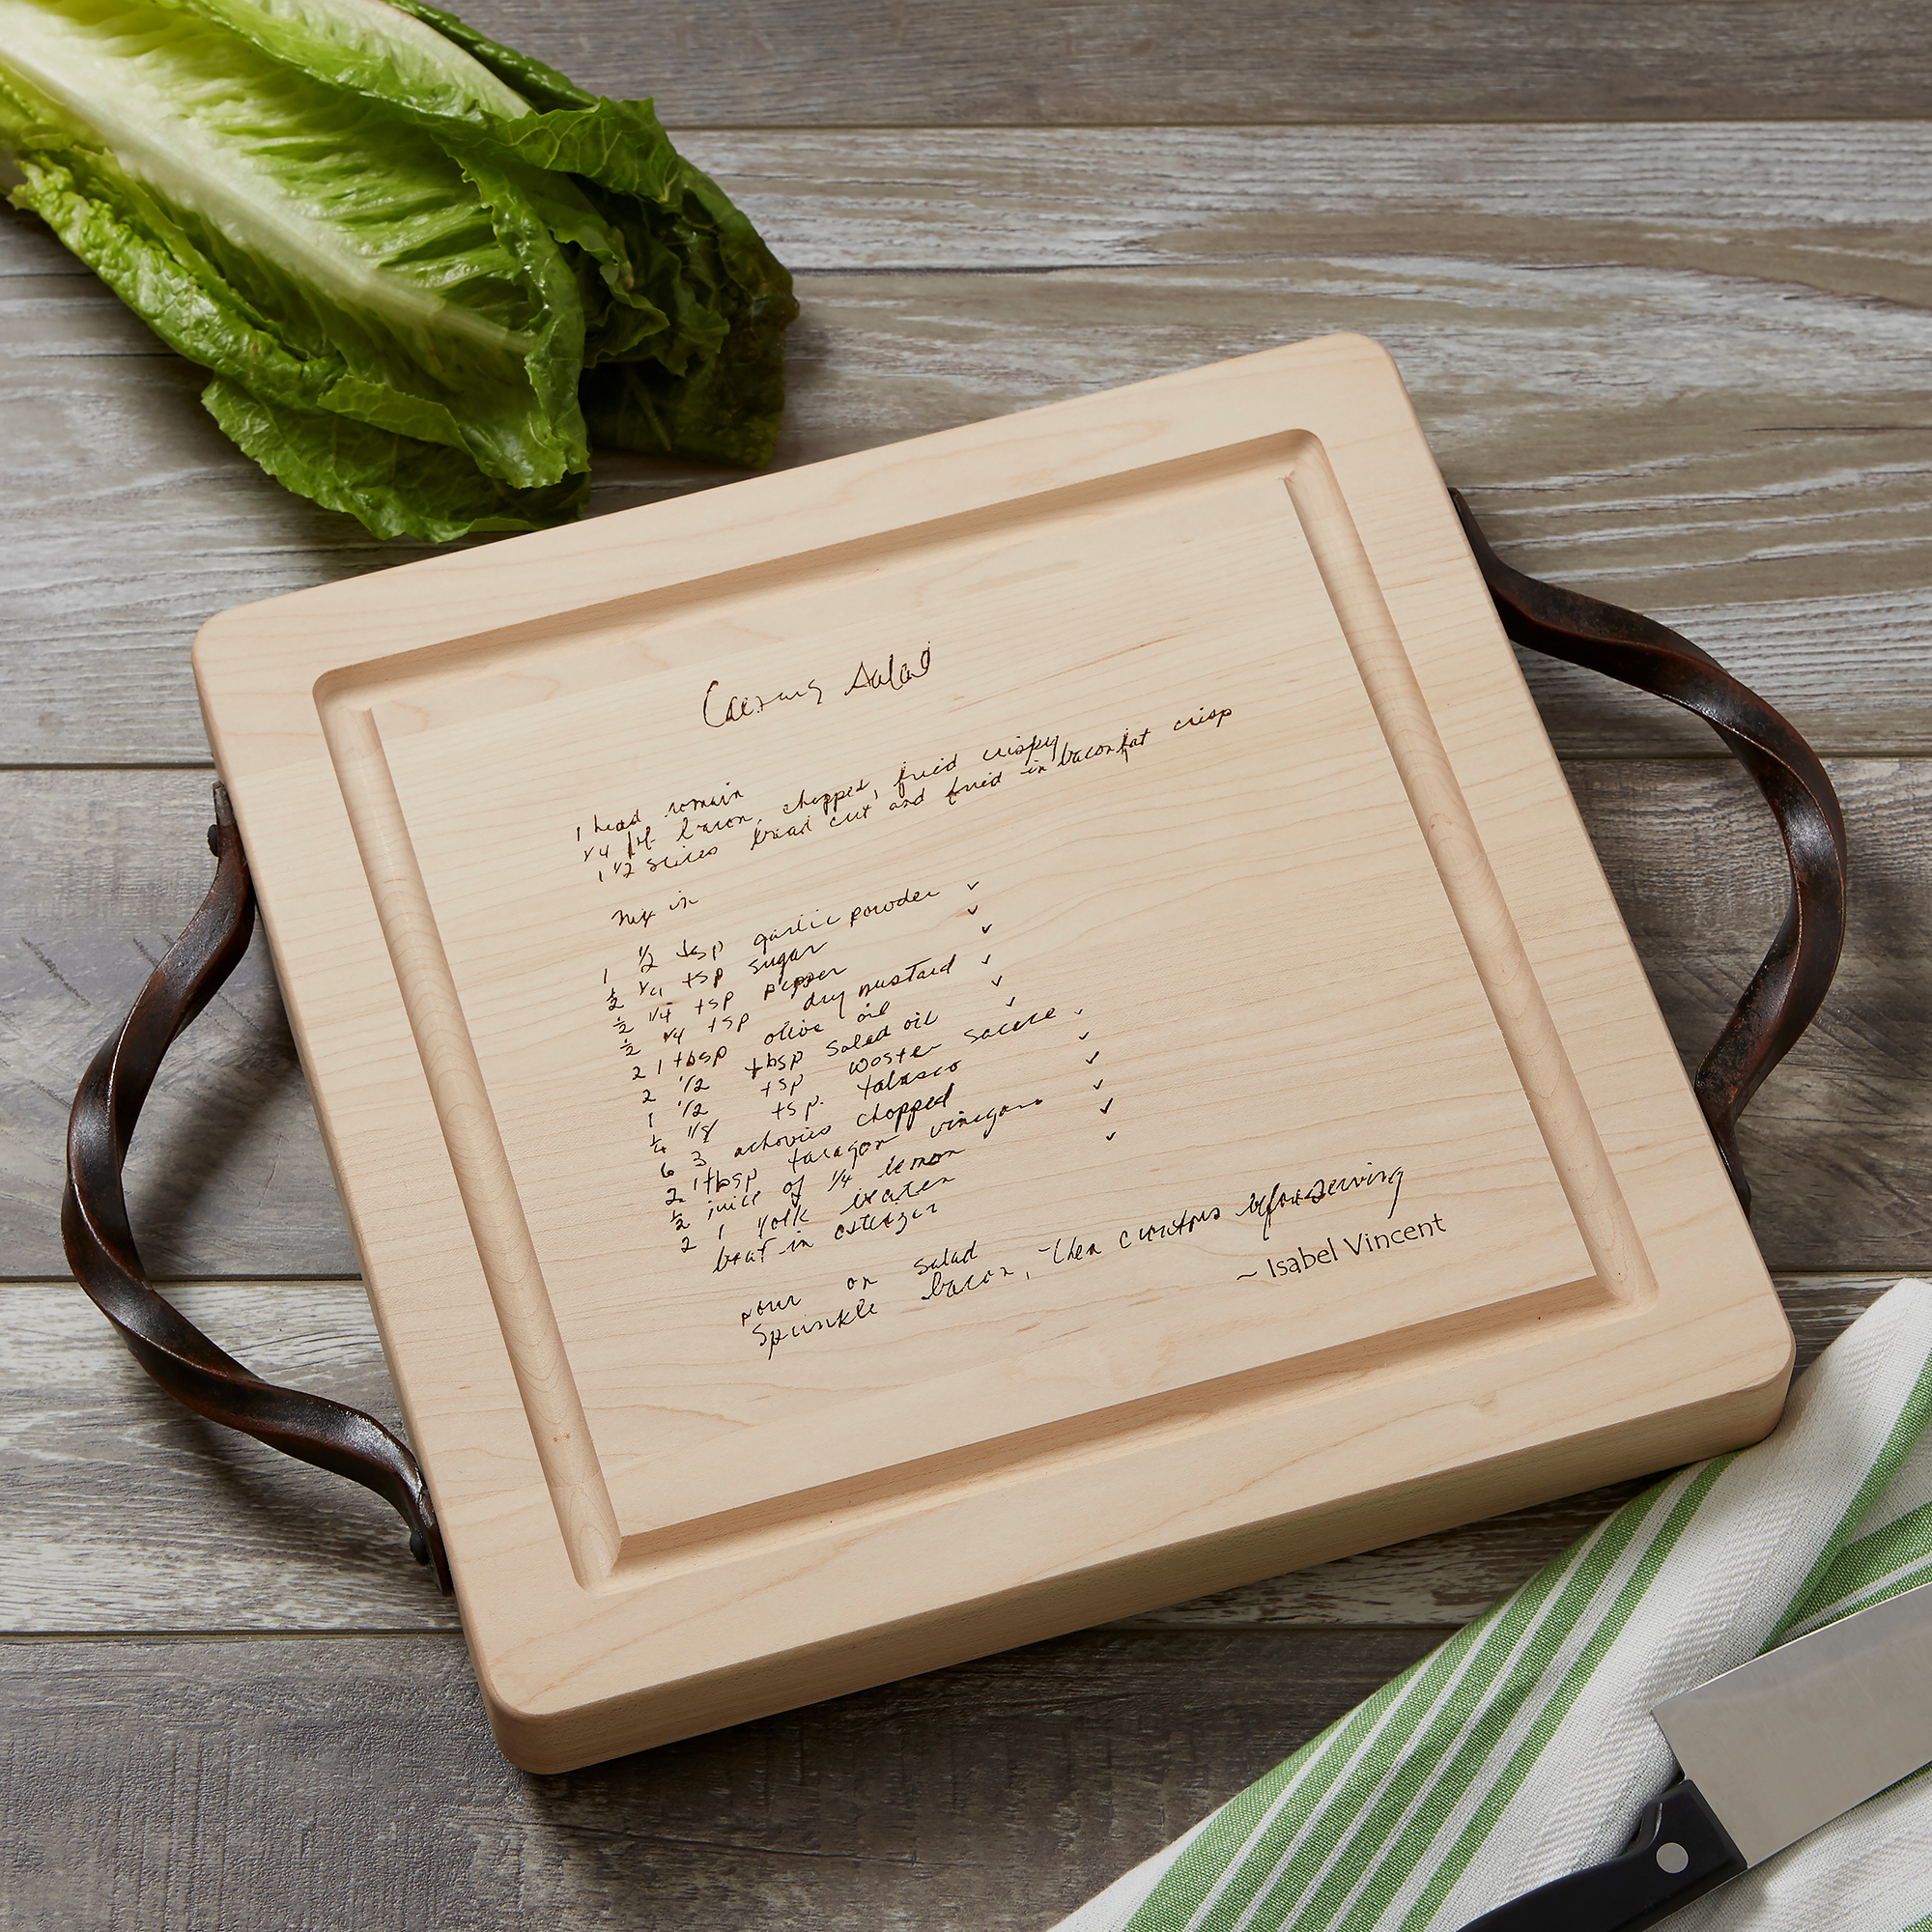 Square wood cutting board with engraved handwritten recipe